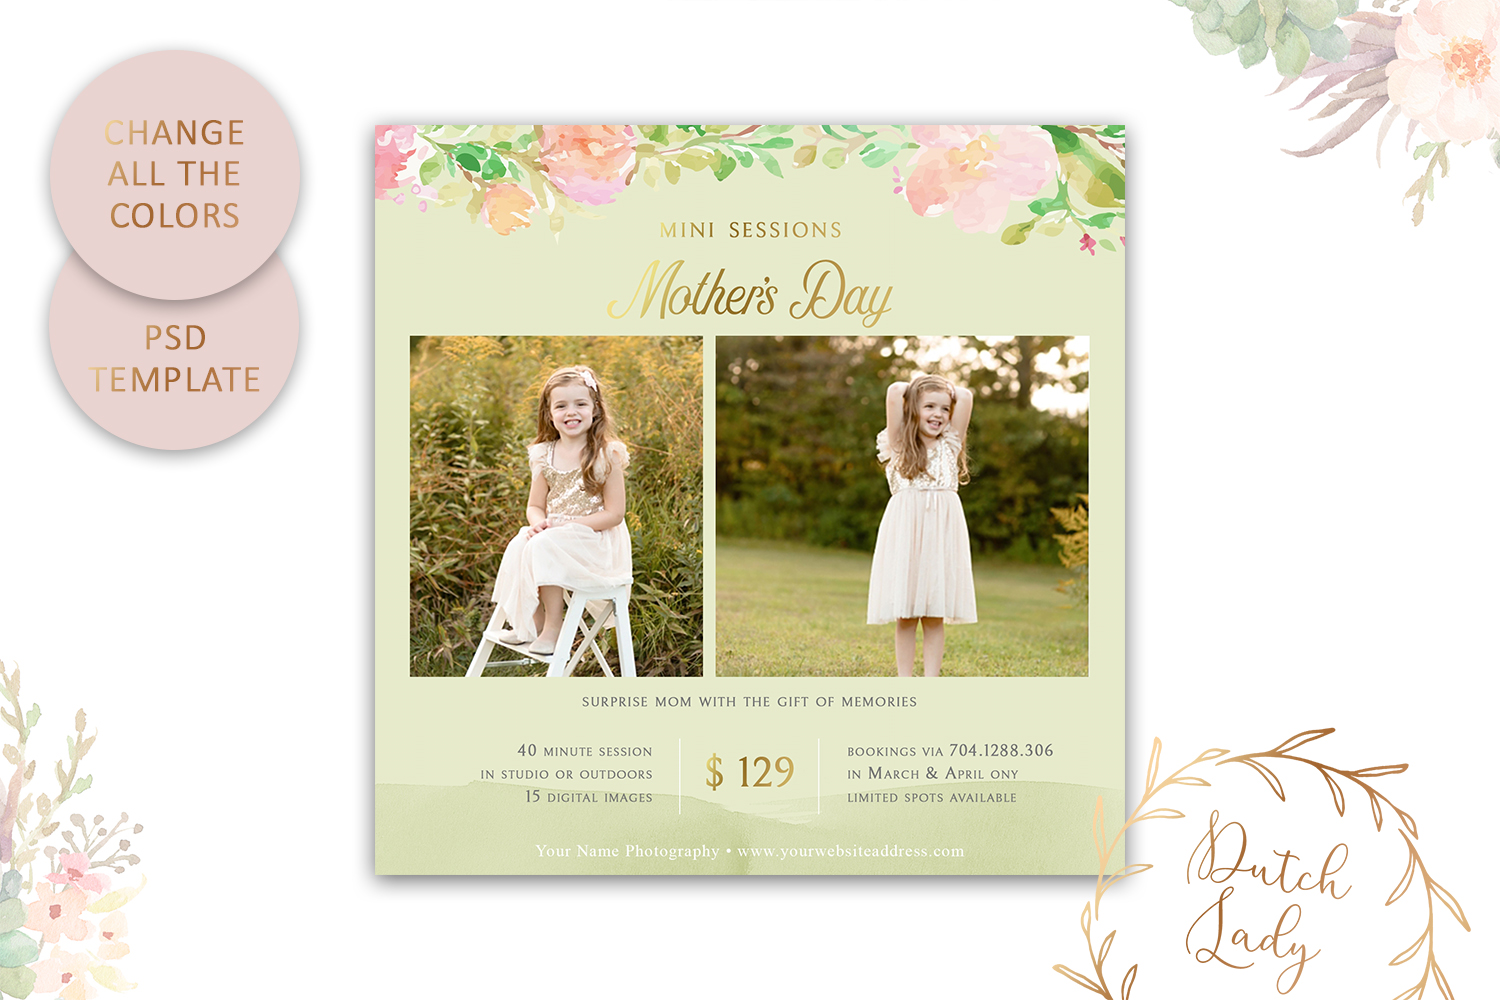 PSD Photo Mother's Day Mini Session Card Template - #41 example image 3